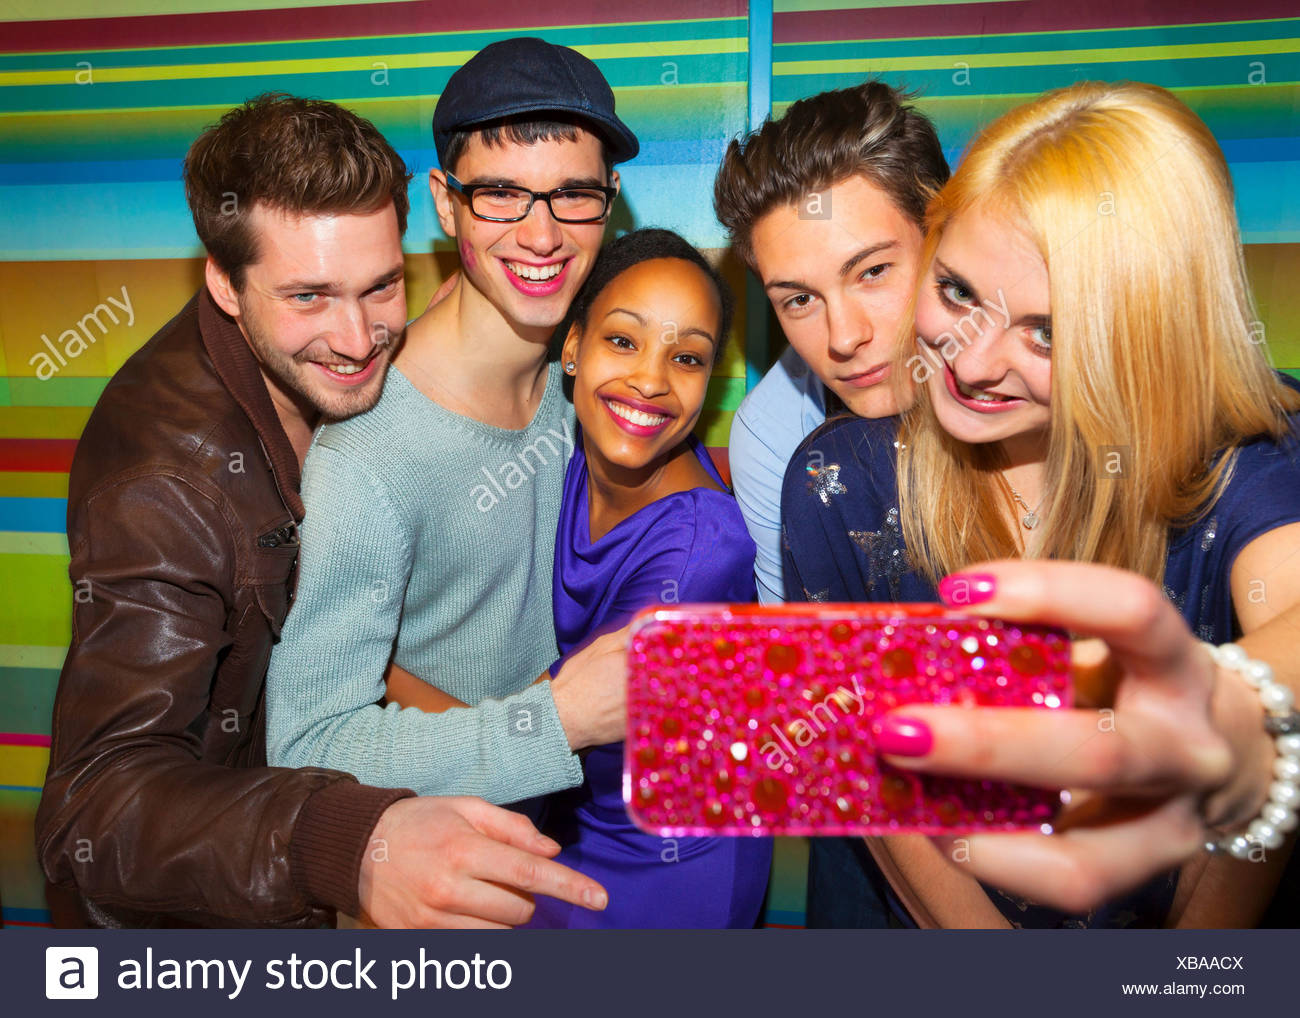 Group of young adults taking self portrait photograph using pink smartphone - Stock Image